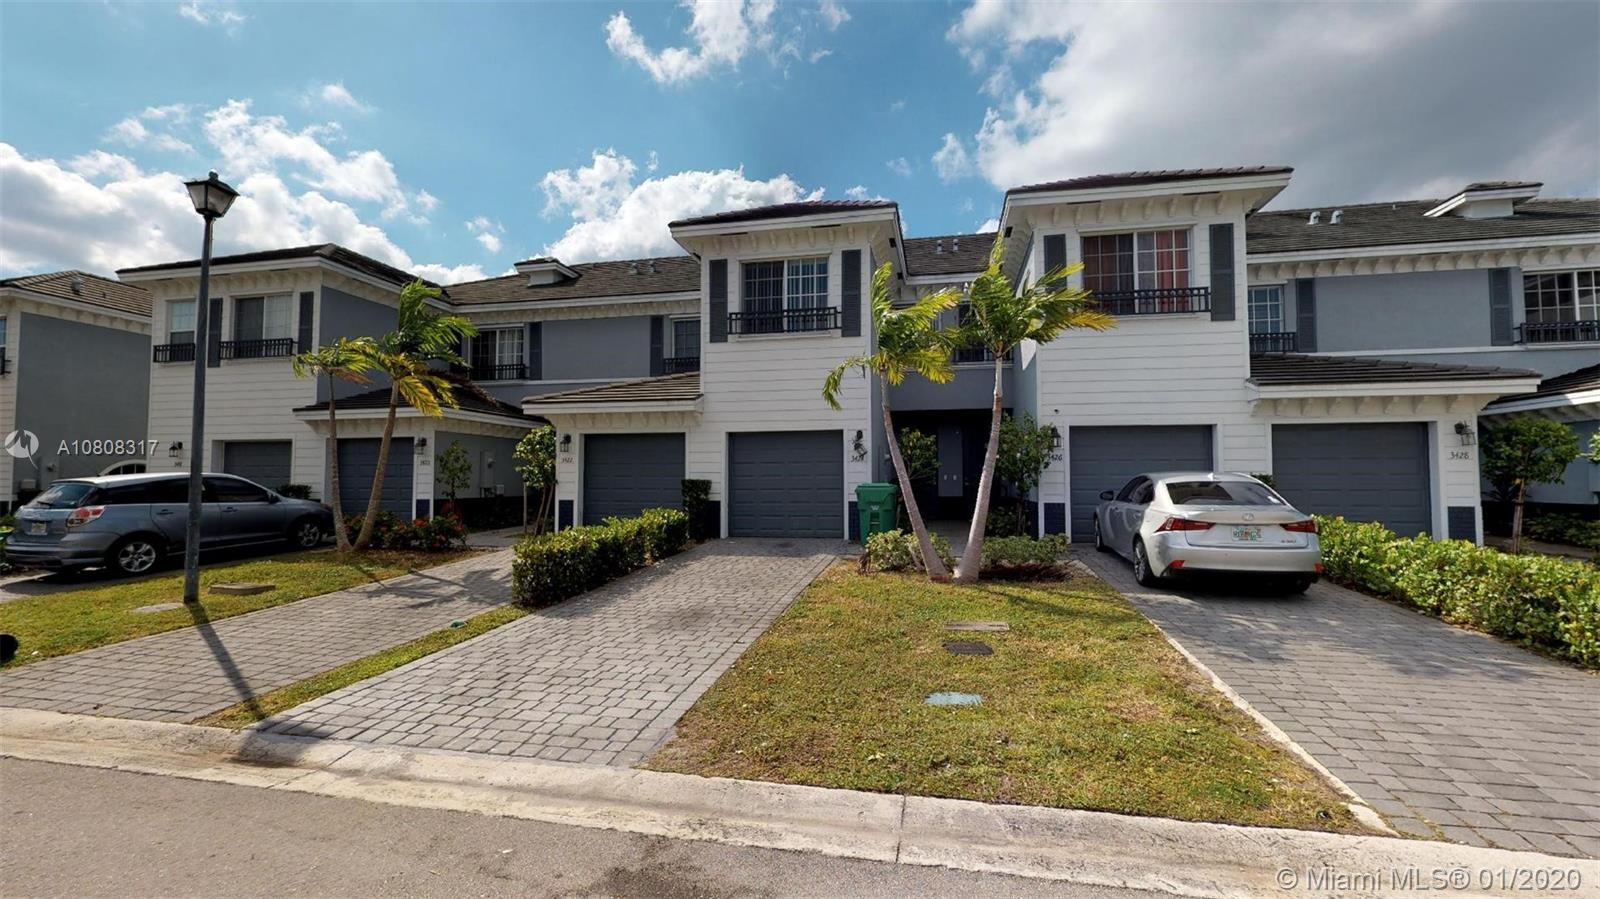 PROPERTY 2 BED /2.5 BATH TOWNHOUSE , MINUTES FROM SAWGRASS MALLl, FORT LAUDERDALE BEACH. AMENITIES INCLUDING A SWIMMING POOL , MEETING ROOMS, CHILDREN´S PLAYGROUND. GREAT OPPORTUNITY . HOA REQUIRED A CREDIT SCORE OF 600 OR ABOVE..